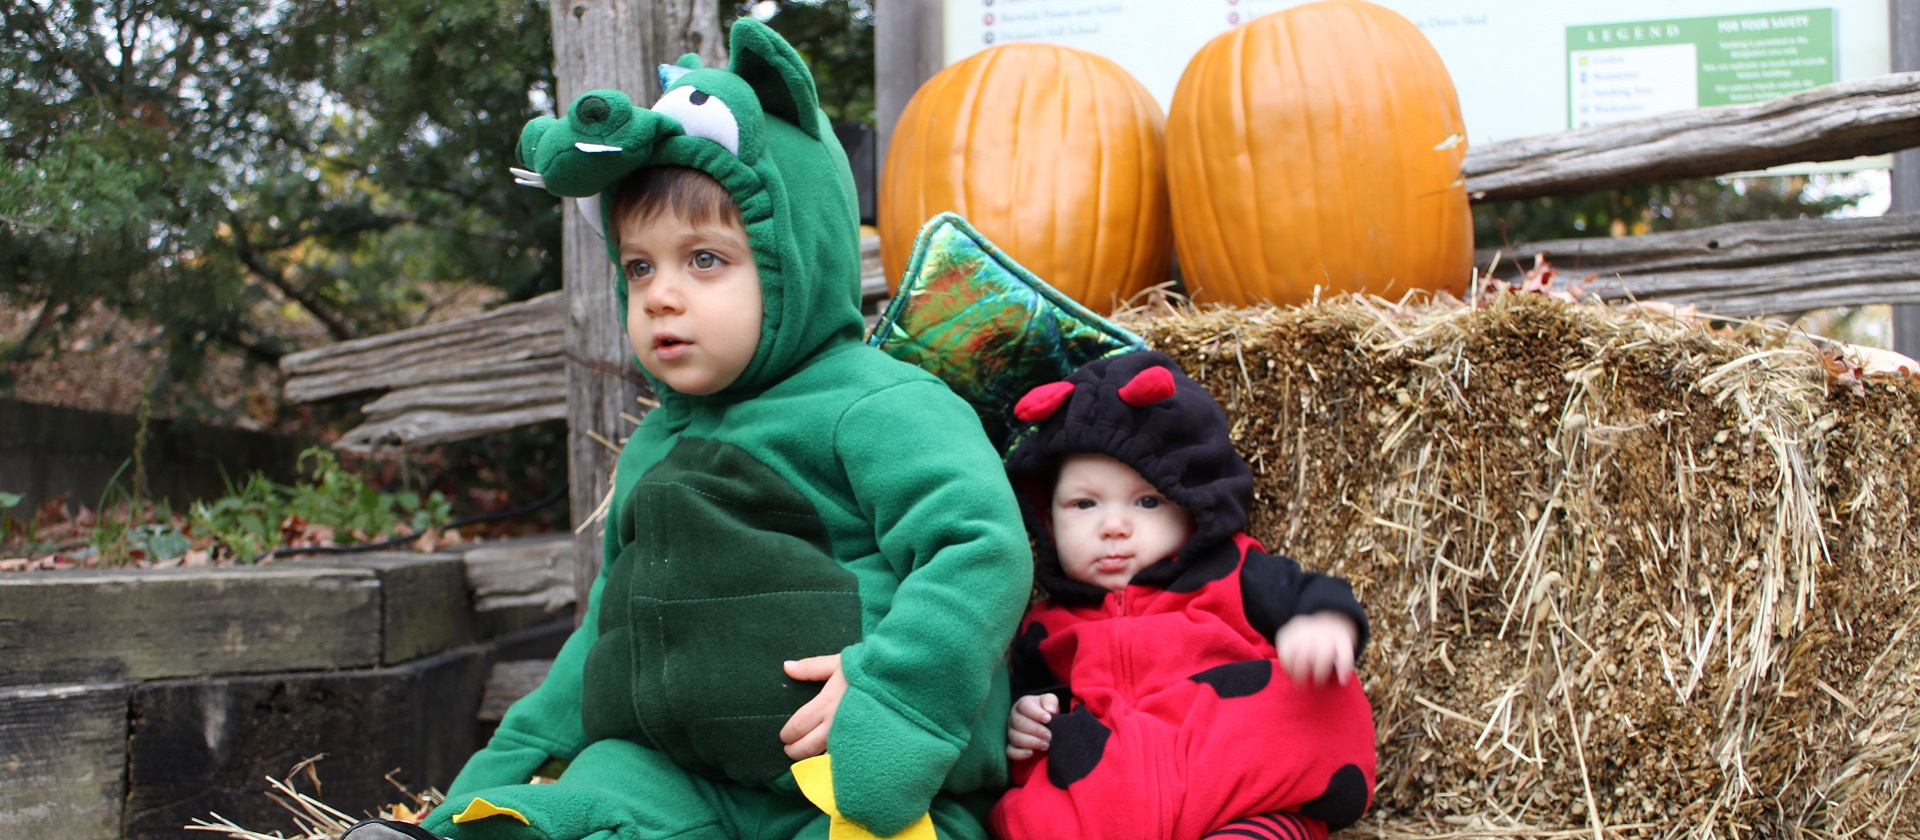 young children in Halloween costumes at Black Creek Howling Hootenanny event